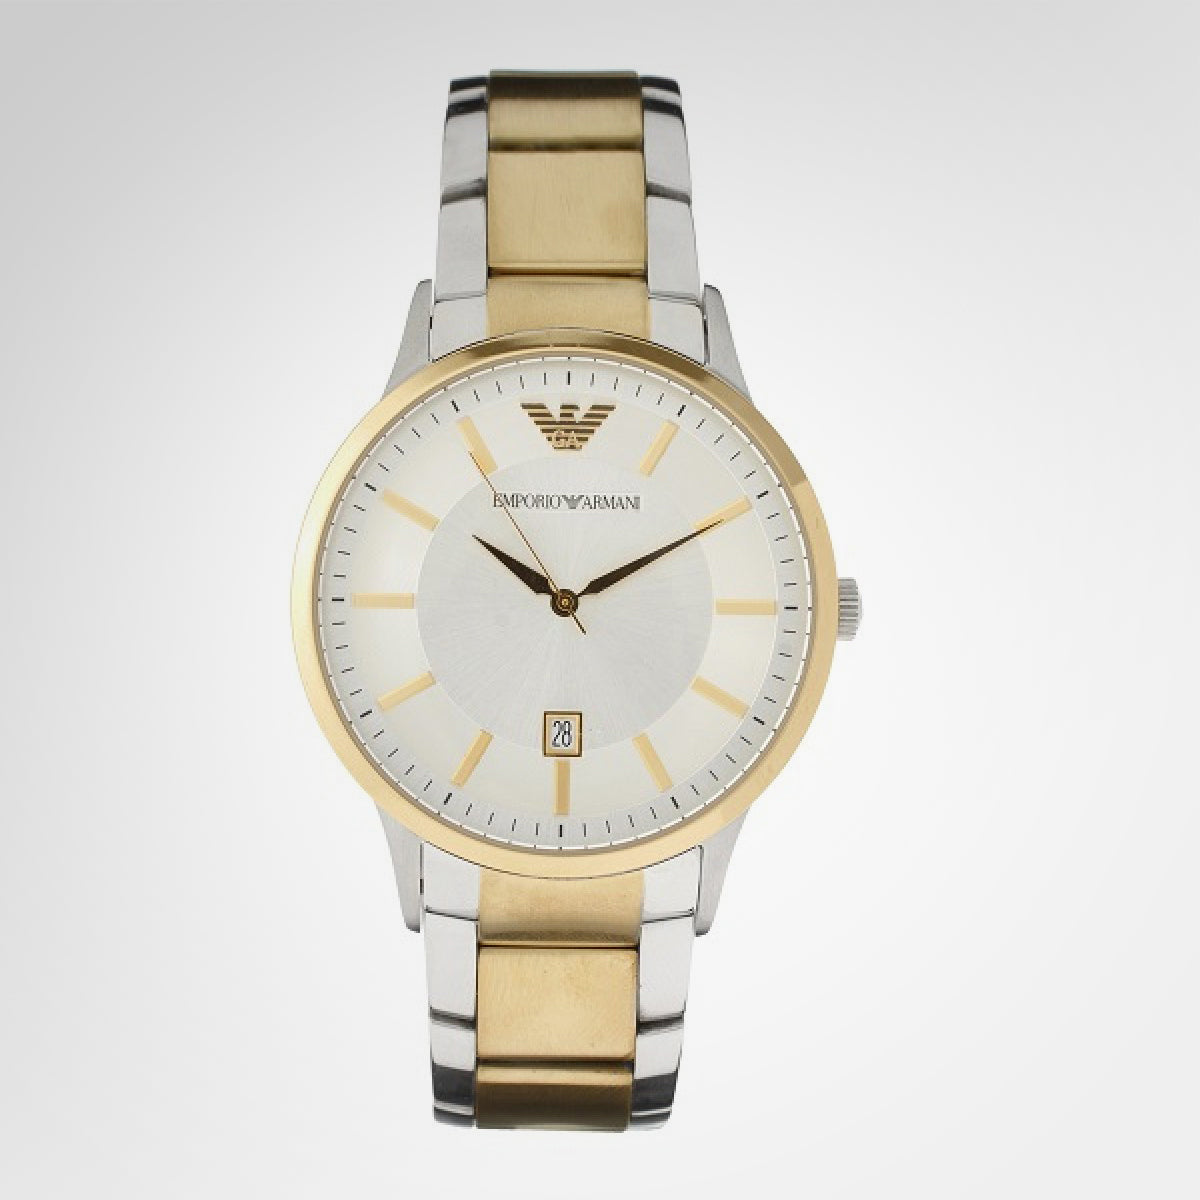 Emporio Armani AR2449 Men's Watch